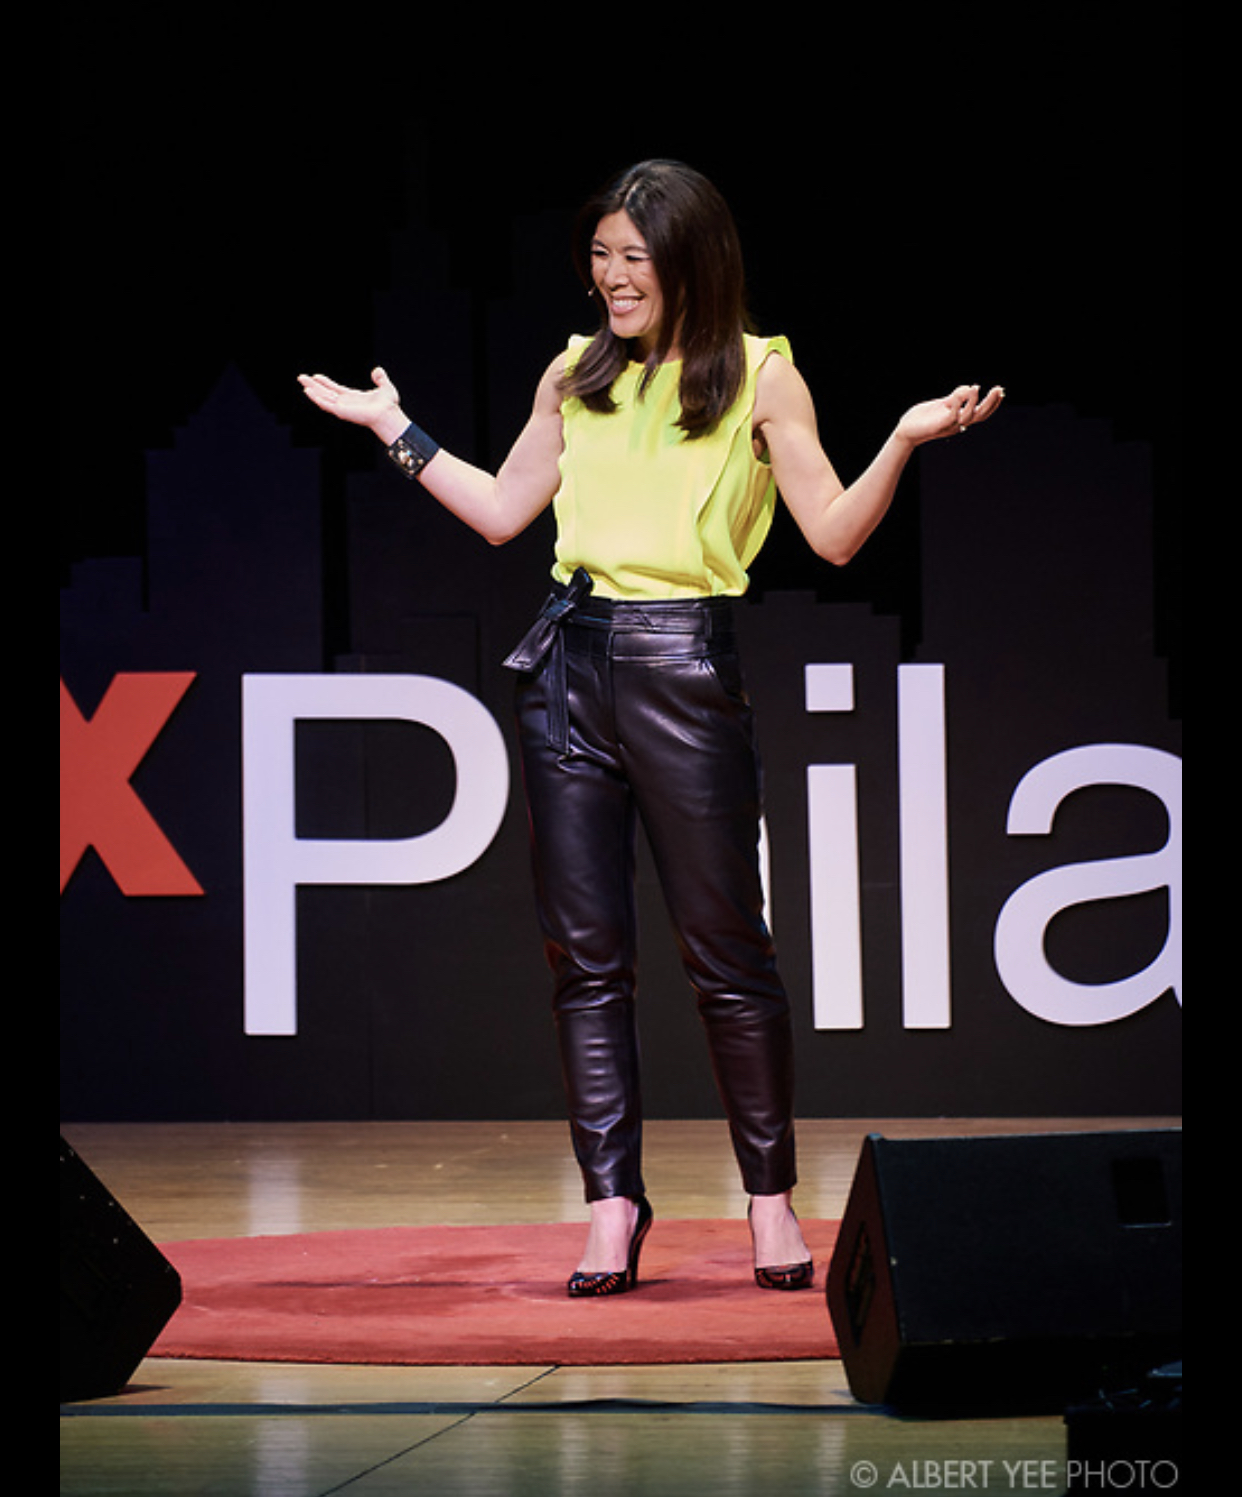 Recent…. - May 15th, 2019 - TEDx PhiladelphiaMarch 26th, 2019 - Speakers Who Dare, NYCApril 25th, 2019 - Pearl S. Buck 2019 Woman of Influence AwardApril 3rd, 2019 - EPA Diversity Conference - Keynote speakerApril 4th, 2019 - WOKE Conference, Lower Merion School District - Keynote speakerJune 14th, 2019 - Investigative Reporters and Editors Conference in Houston - PanelistAugust 1st, 2019 - Asian American Journalists Conference in Atlanta - Panelist (Happening soon)November 9, 2019 - US PAACC Leadership Awards Dinner in NYC - Keynote Speaker (Happening soon)November 22-23, 2019 - World Woman Summit at Clinton Foundation in Little Rock - Emcee and award recipient (Happening soon)